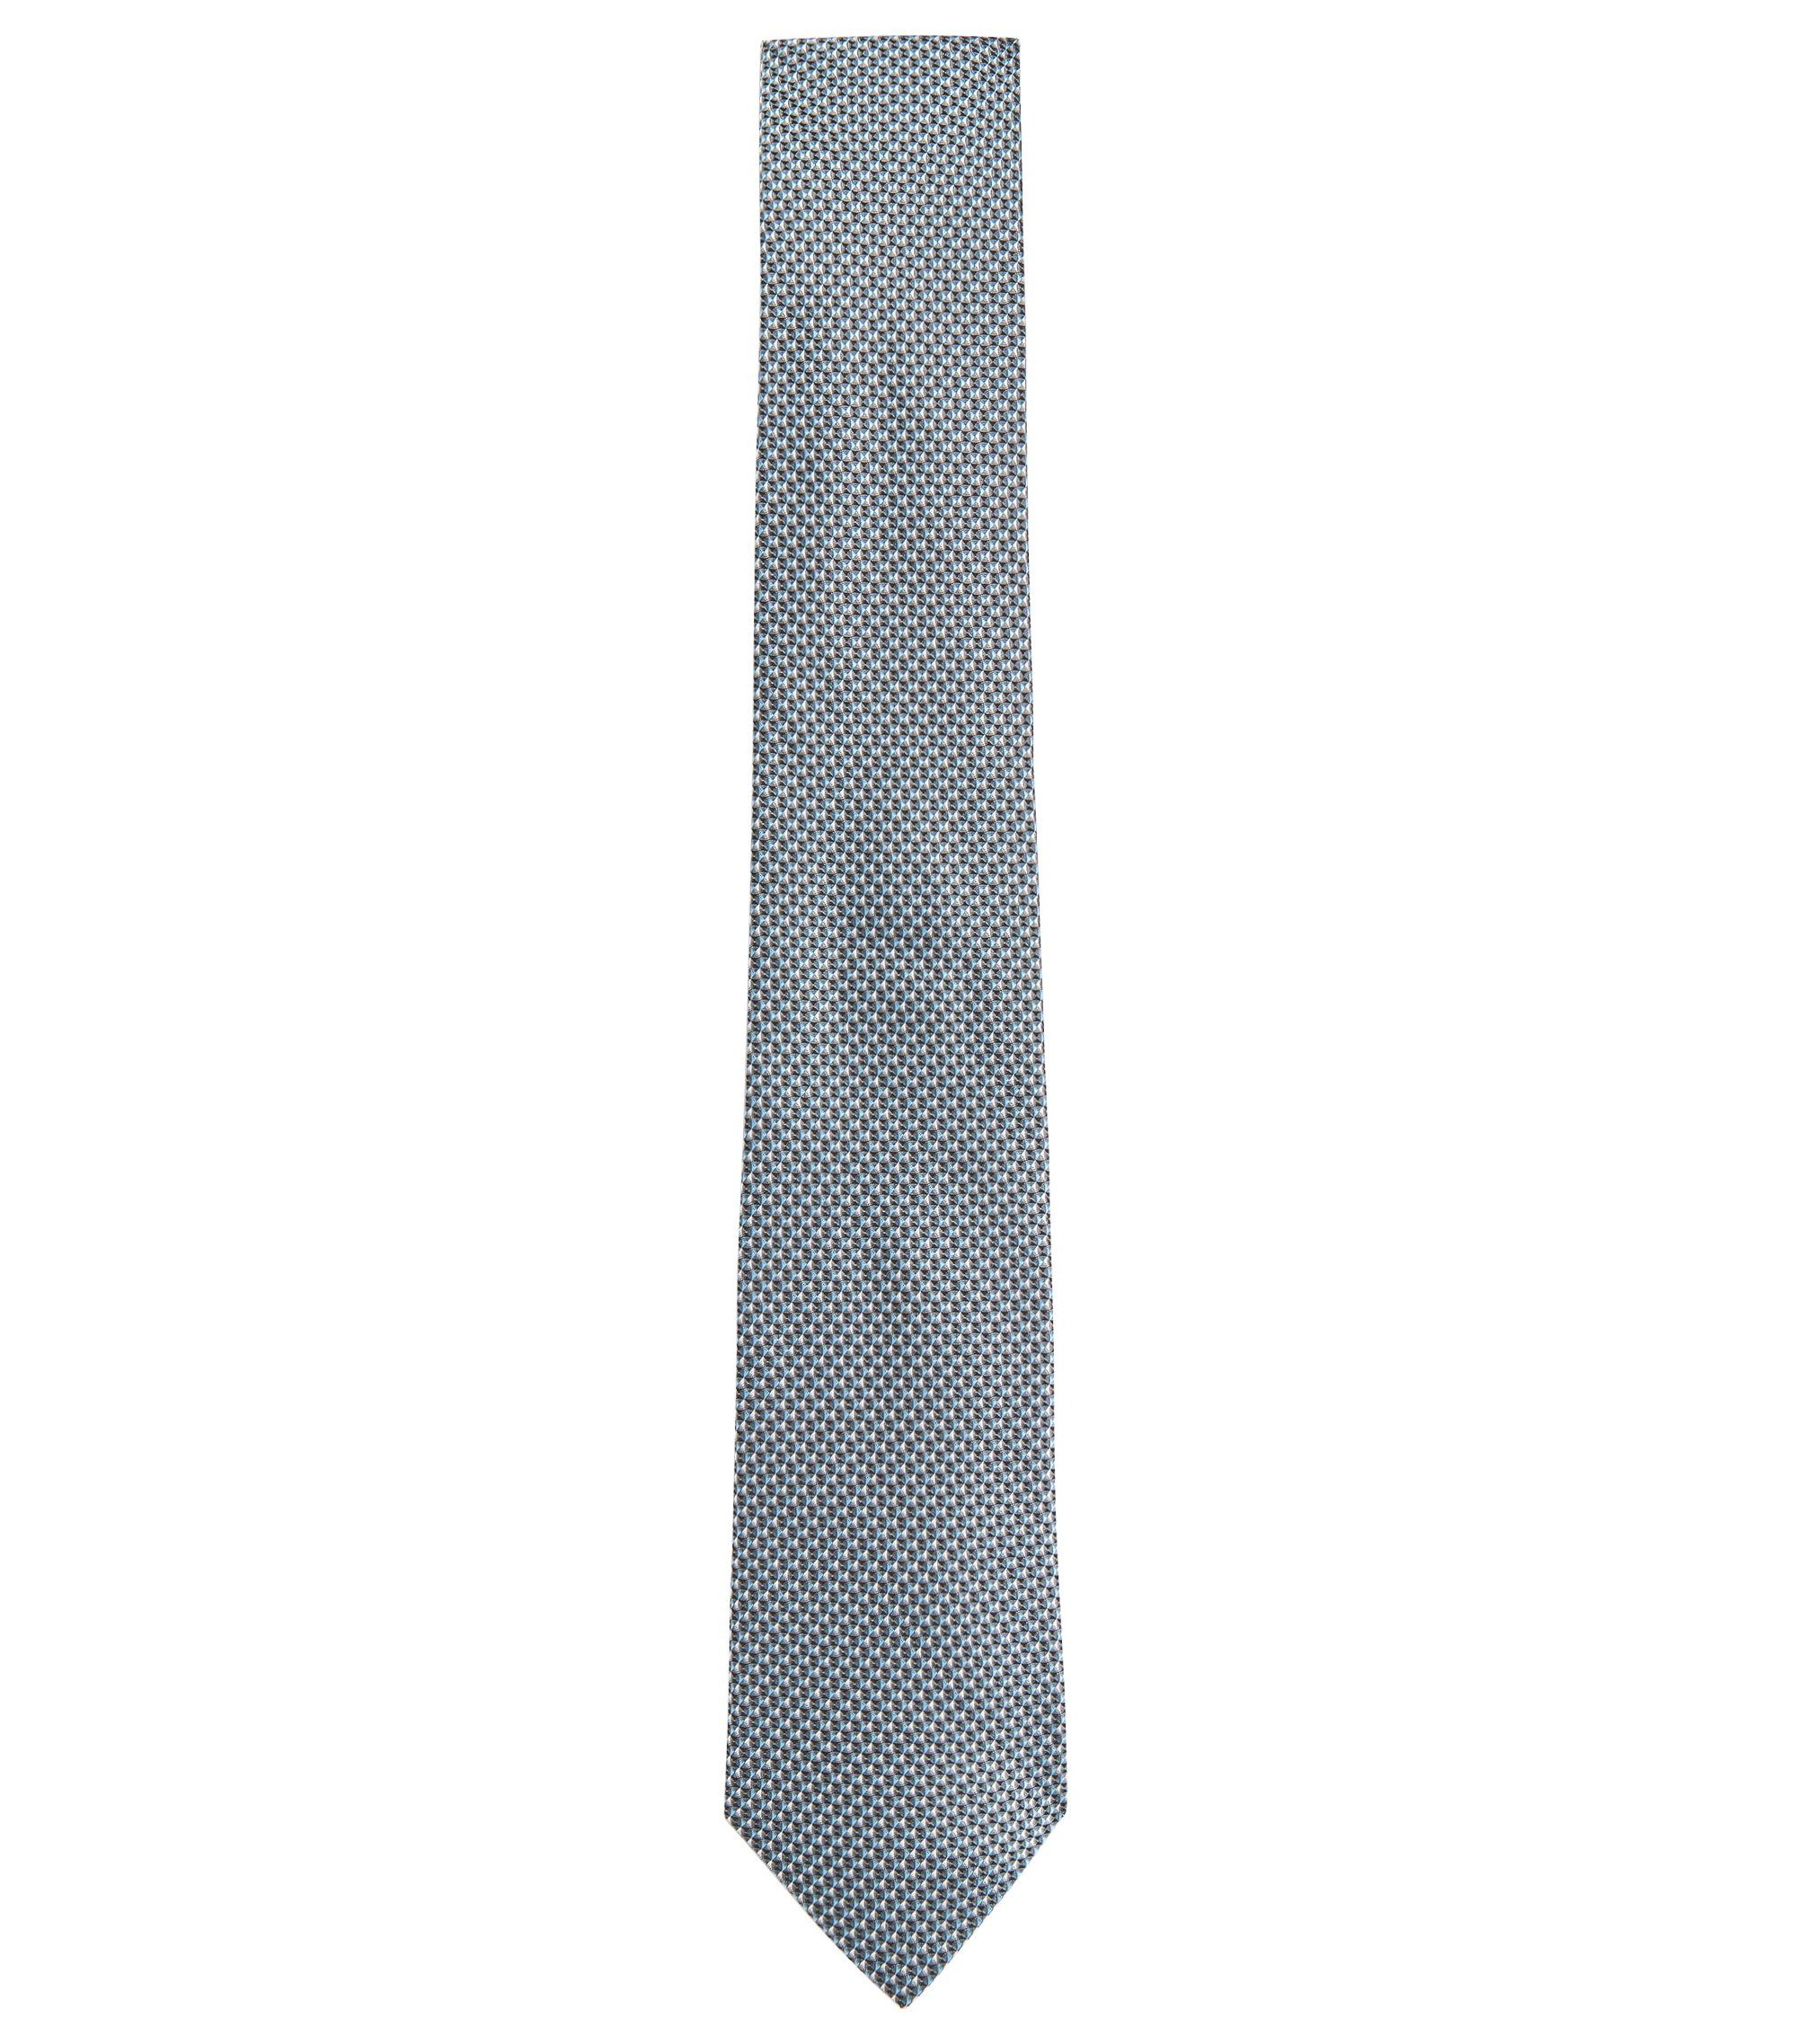 'Tie 7.5 cm' | Regular, Silk Geo Patterned Tie, Black